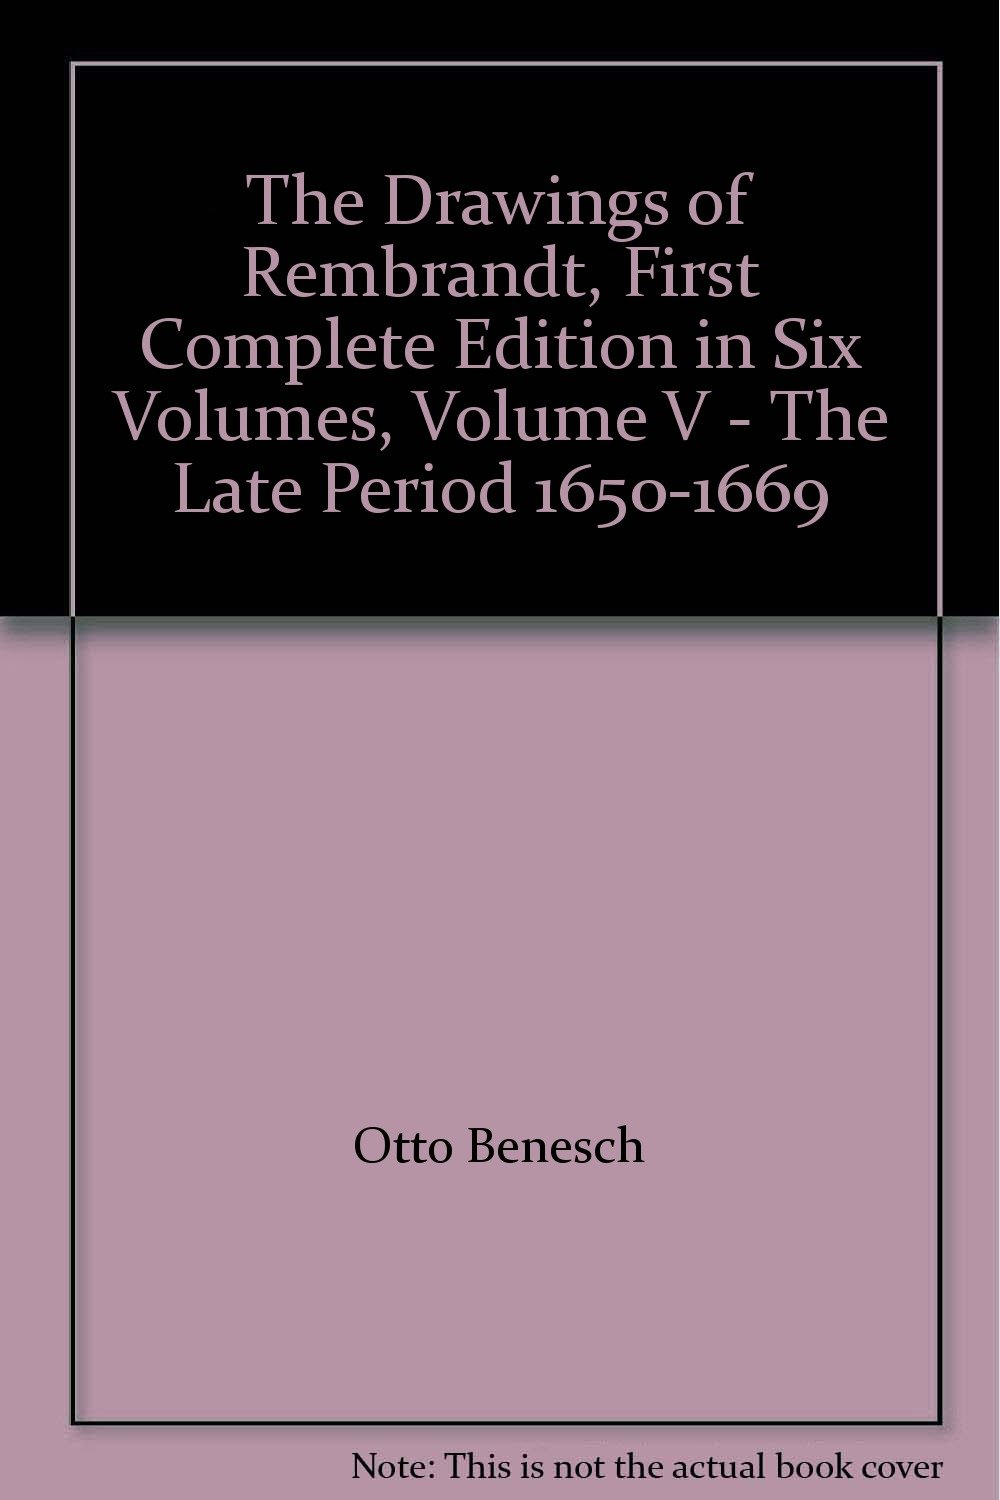 the drawings of rembrandt first complete edition in six volumes volume v the late period 1650 1669